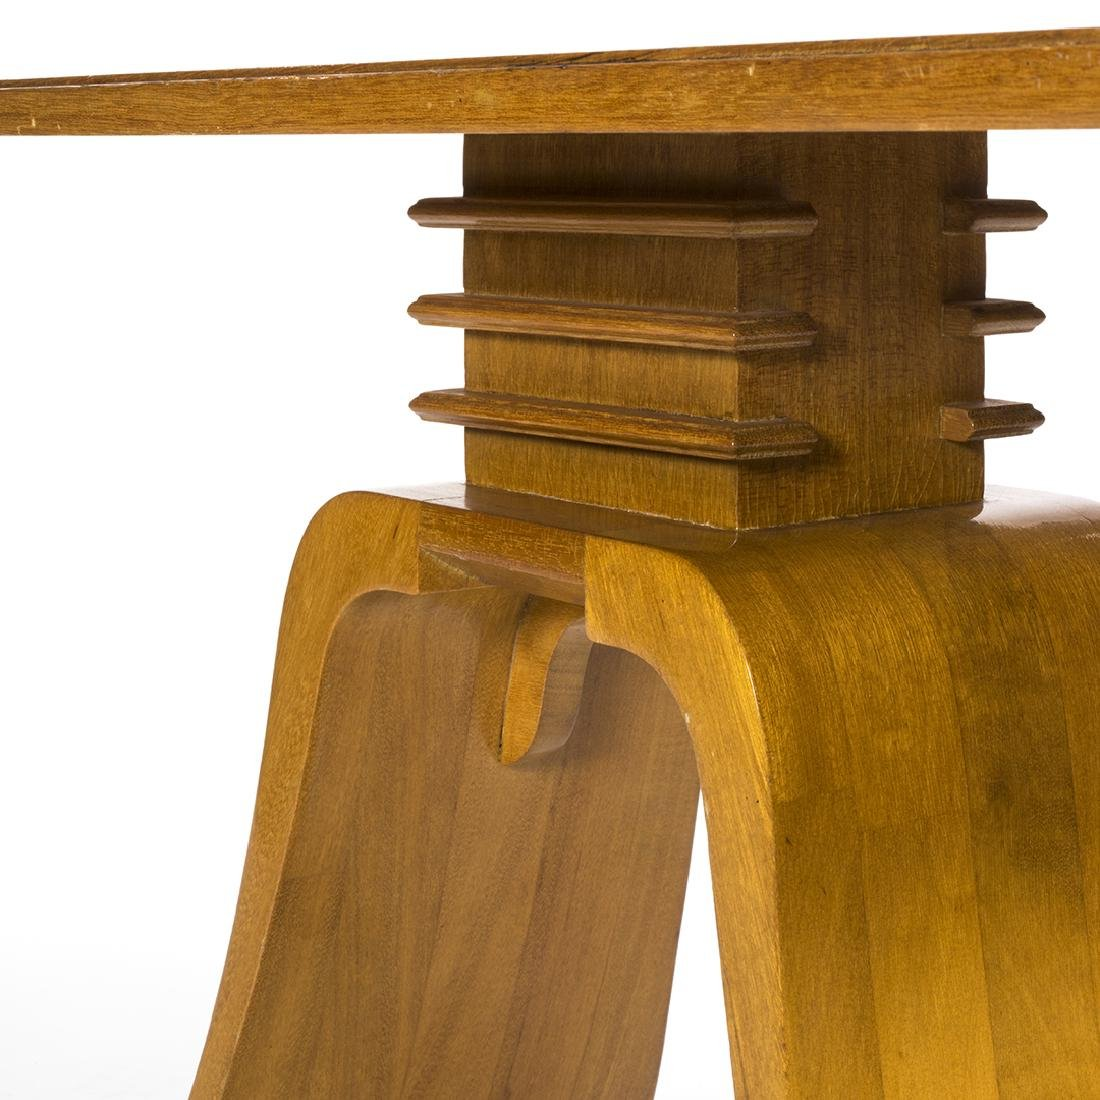 Paul Frankl Occasional Tables (2) - 6